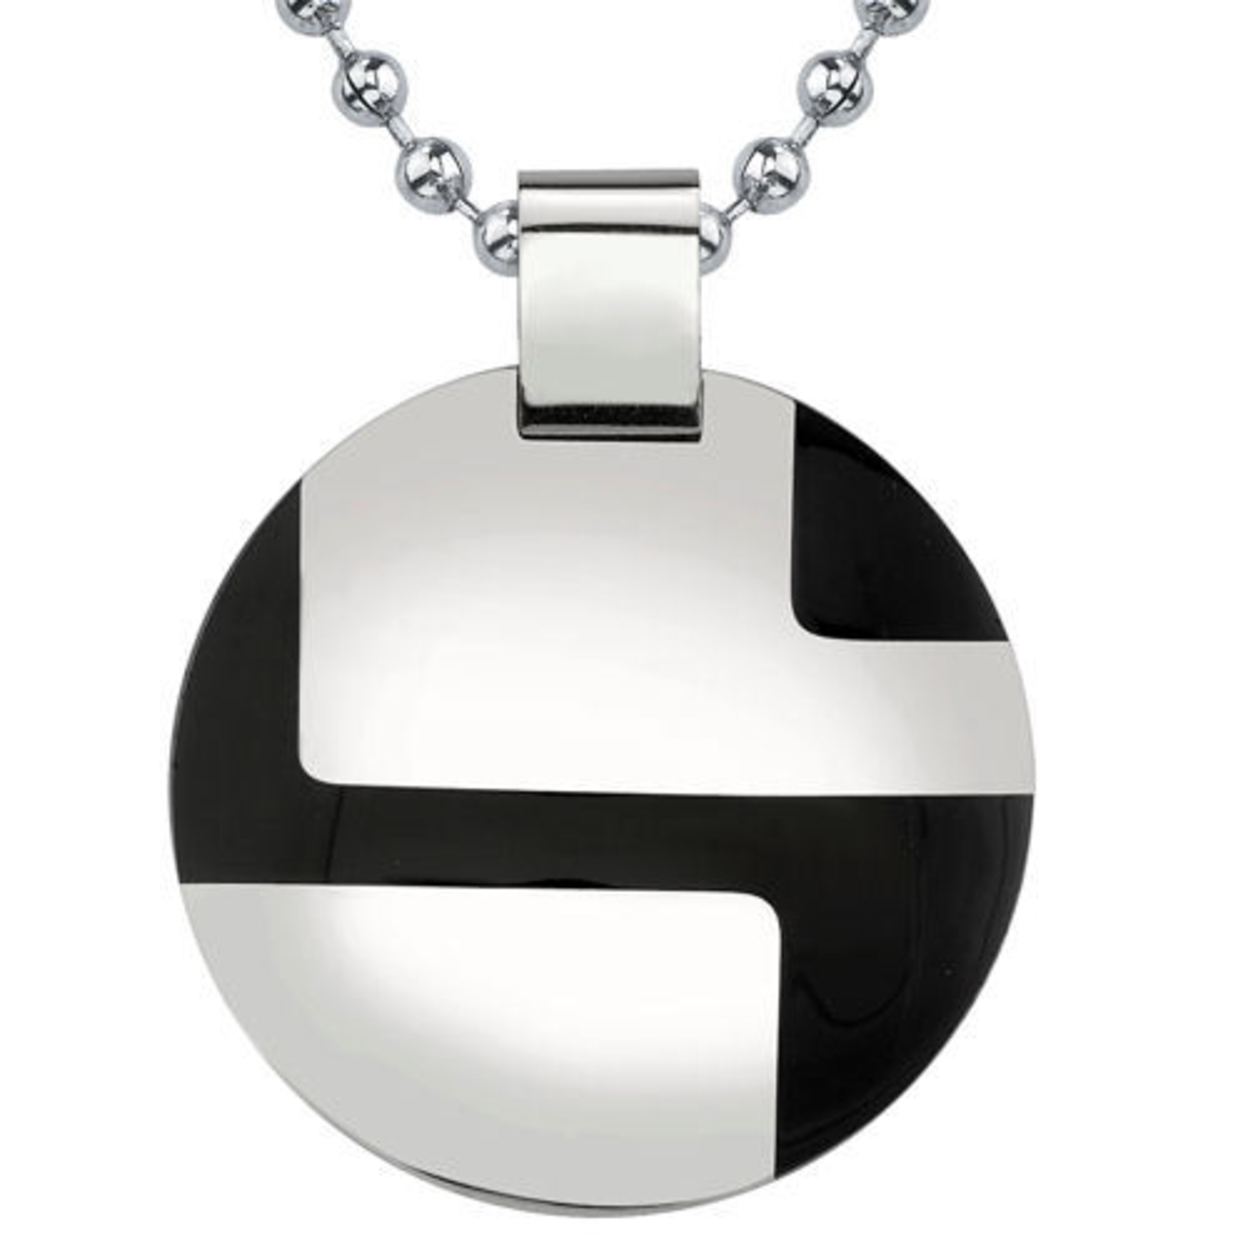 Surgical Stainless Steel Enamel-finish Disc Pendant on a Stainless Steel Ball Chain Style Sn8116 5388b3eb1b0ba013720000ba